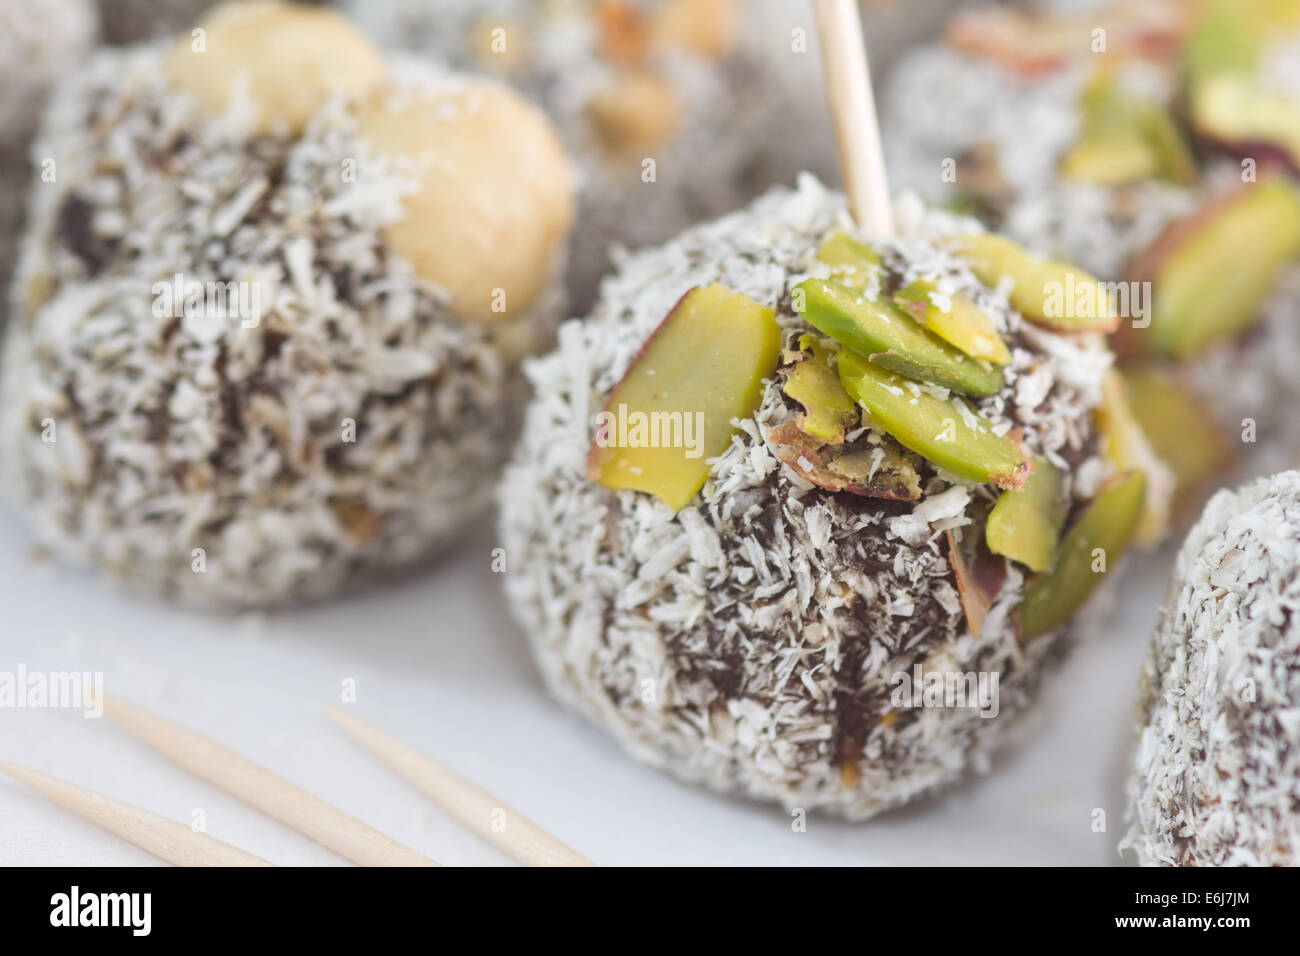 Special Turkish Fig Dessert topped with coconut powder, nuts and pistachio. Stock Photo